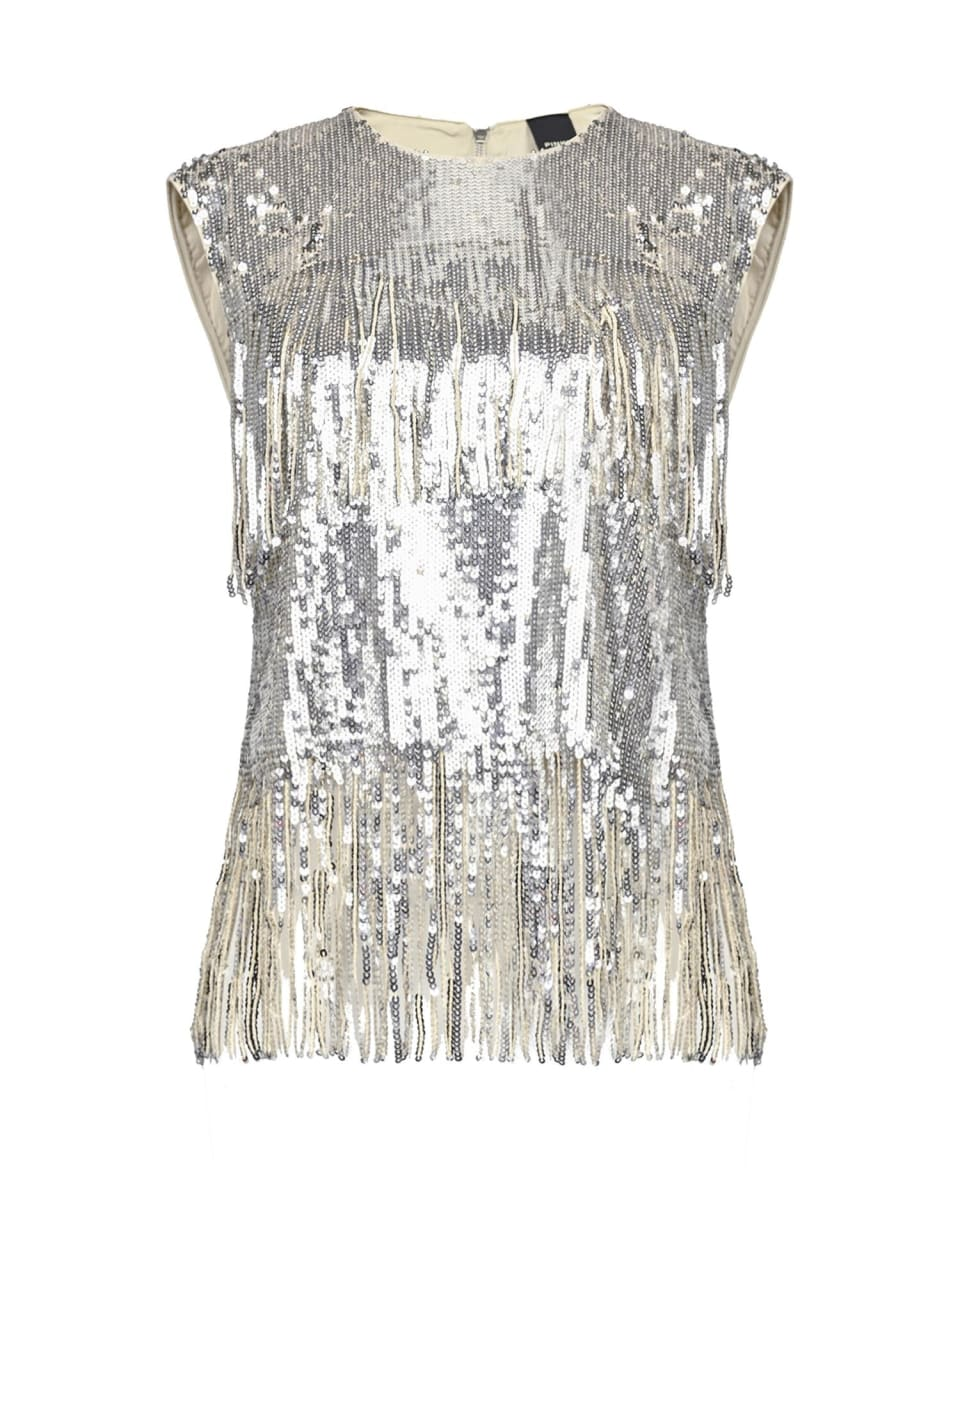 Top en sequins avec franges